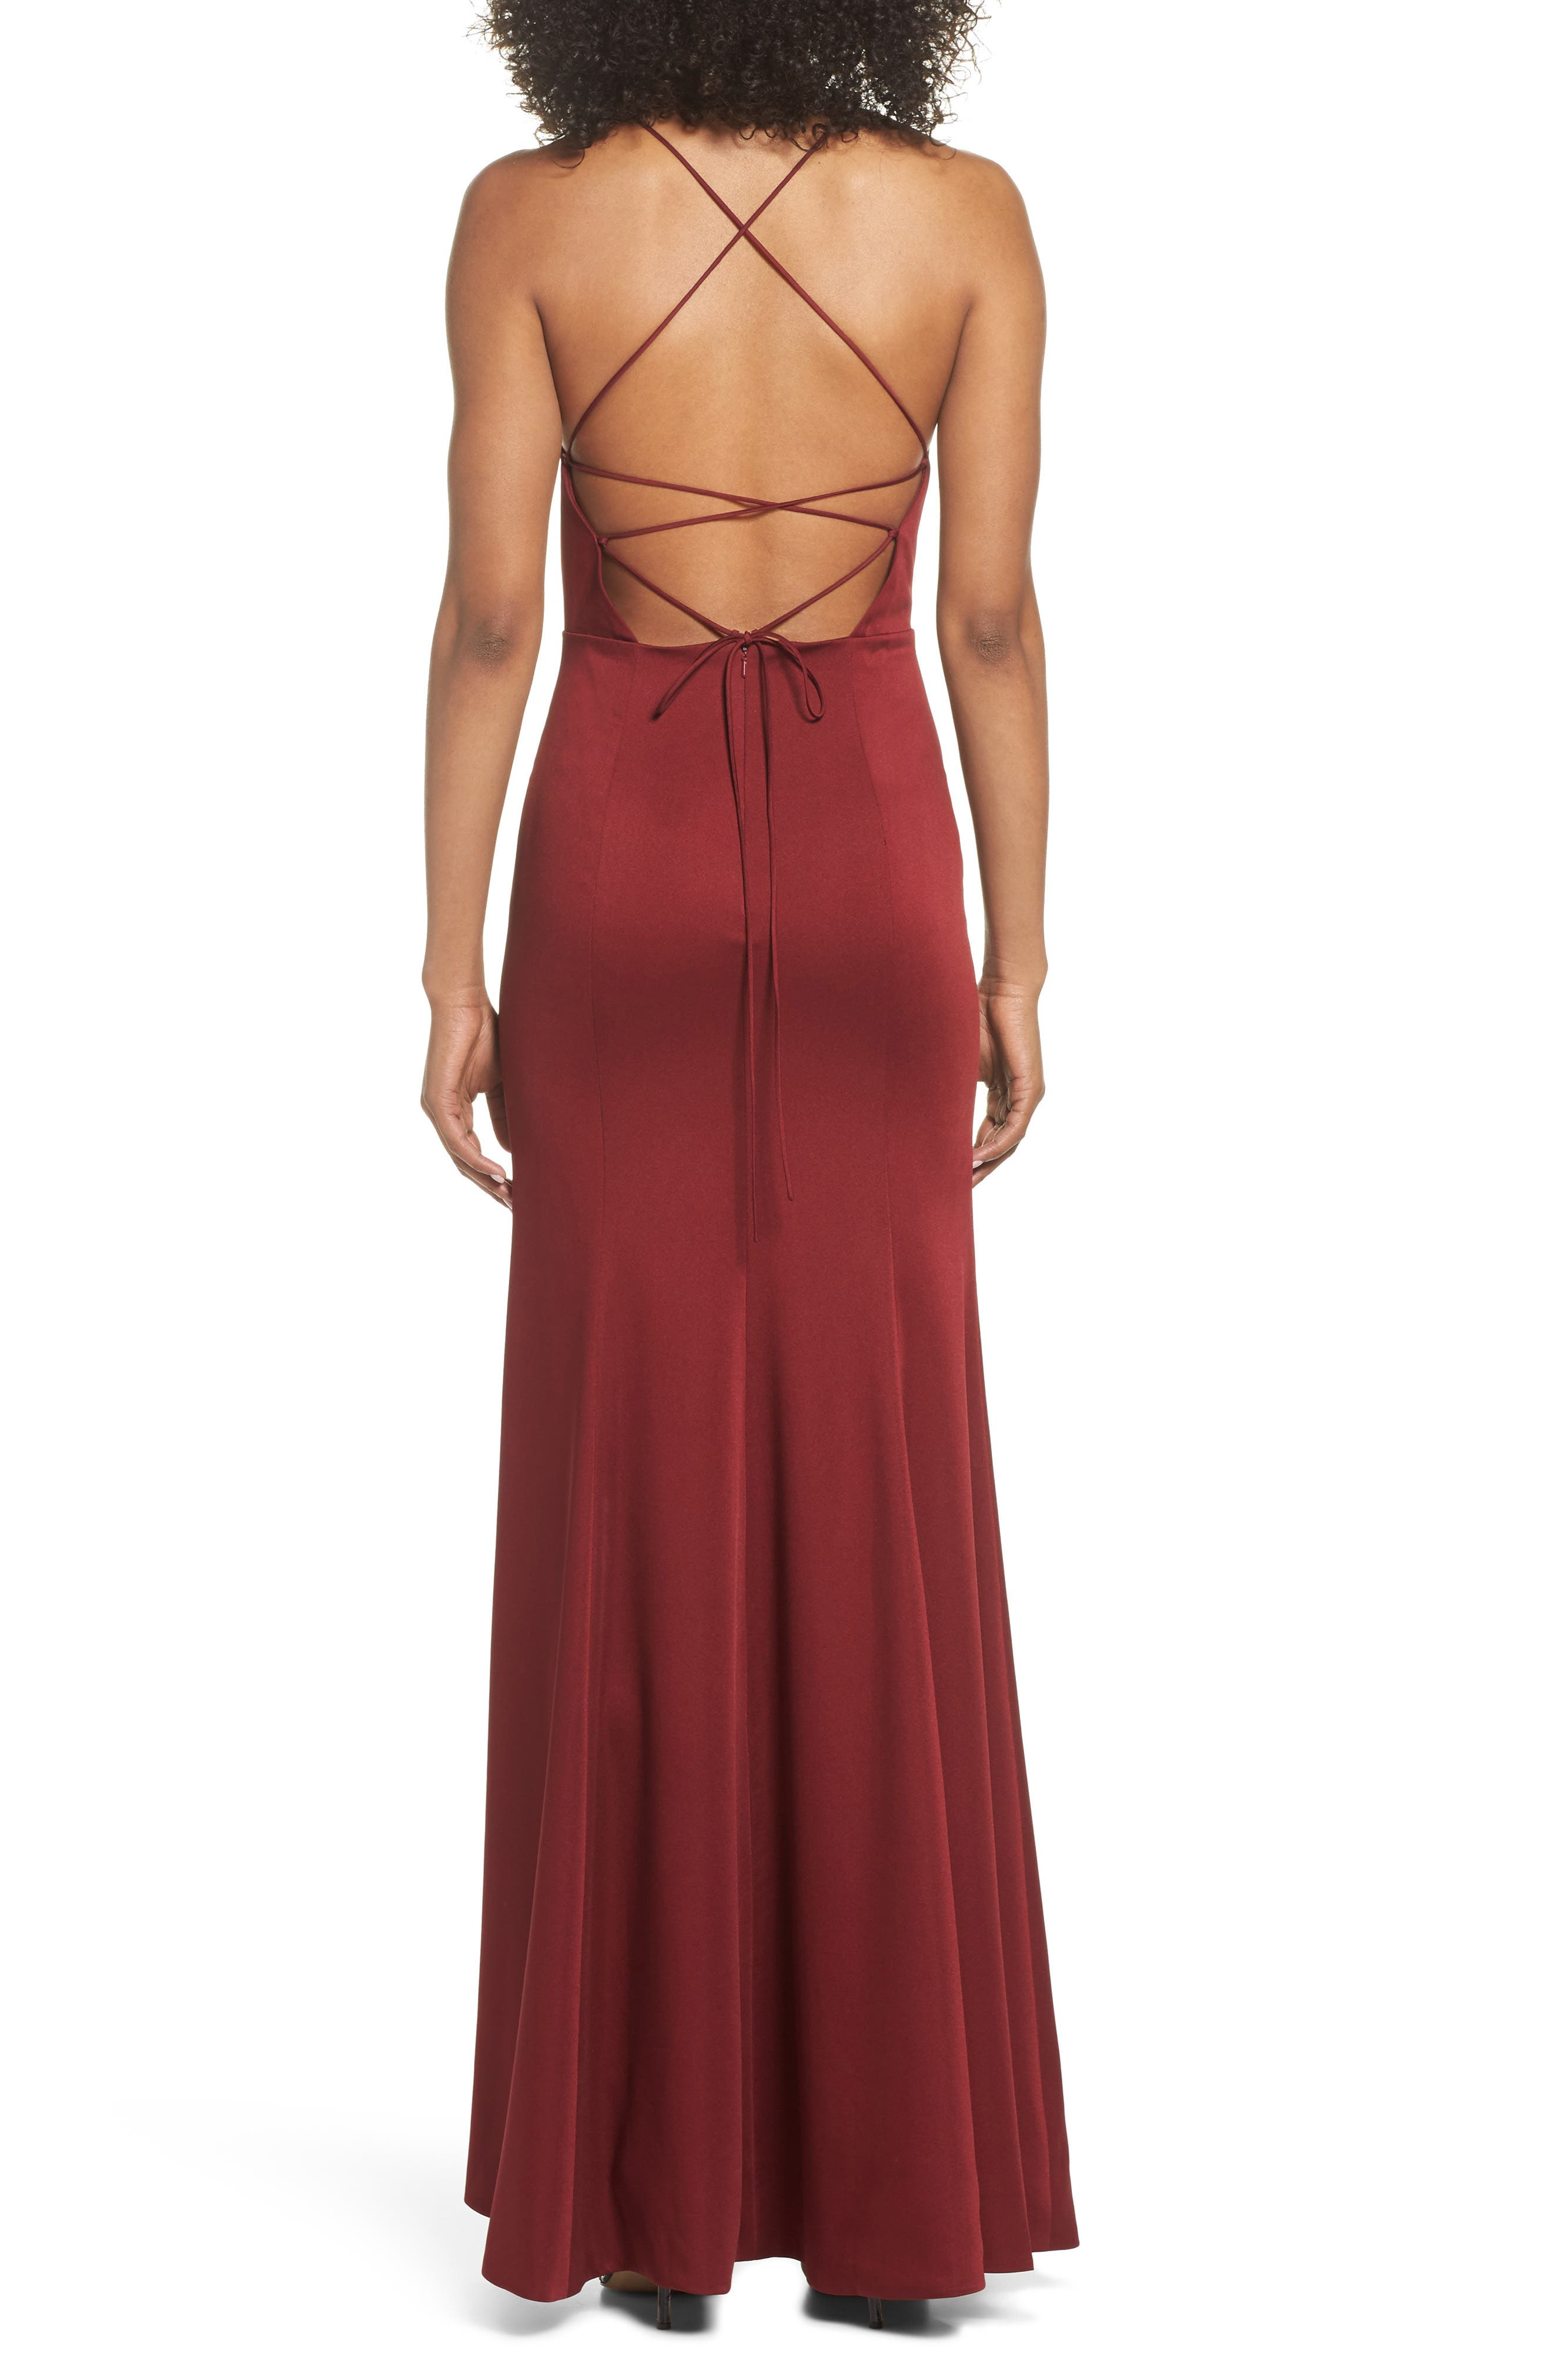 Naomi Luxe Crepe Halter Gown,                             Alternate thumbnail 2, color,                             CRANBERRY